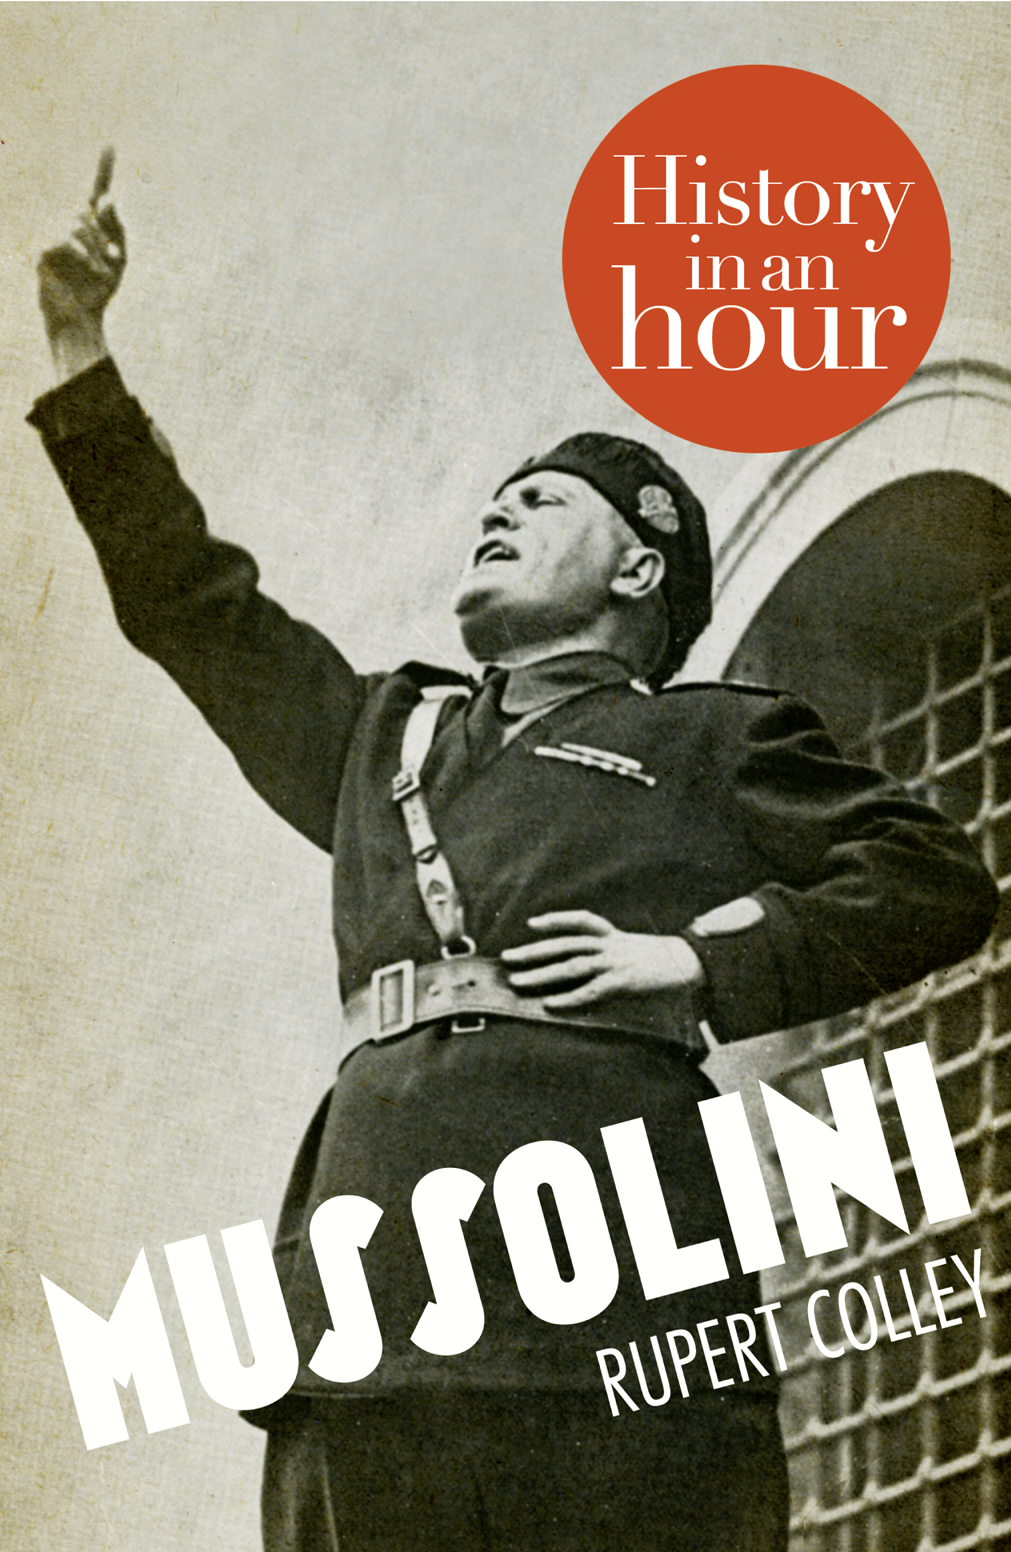 Rupert Colley - Mussolini: History in an Hour